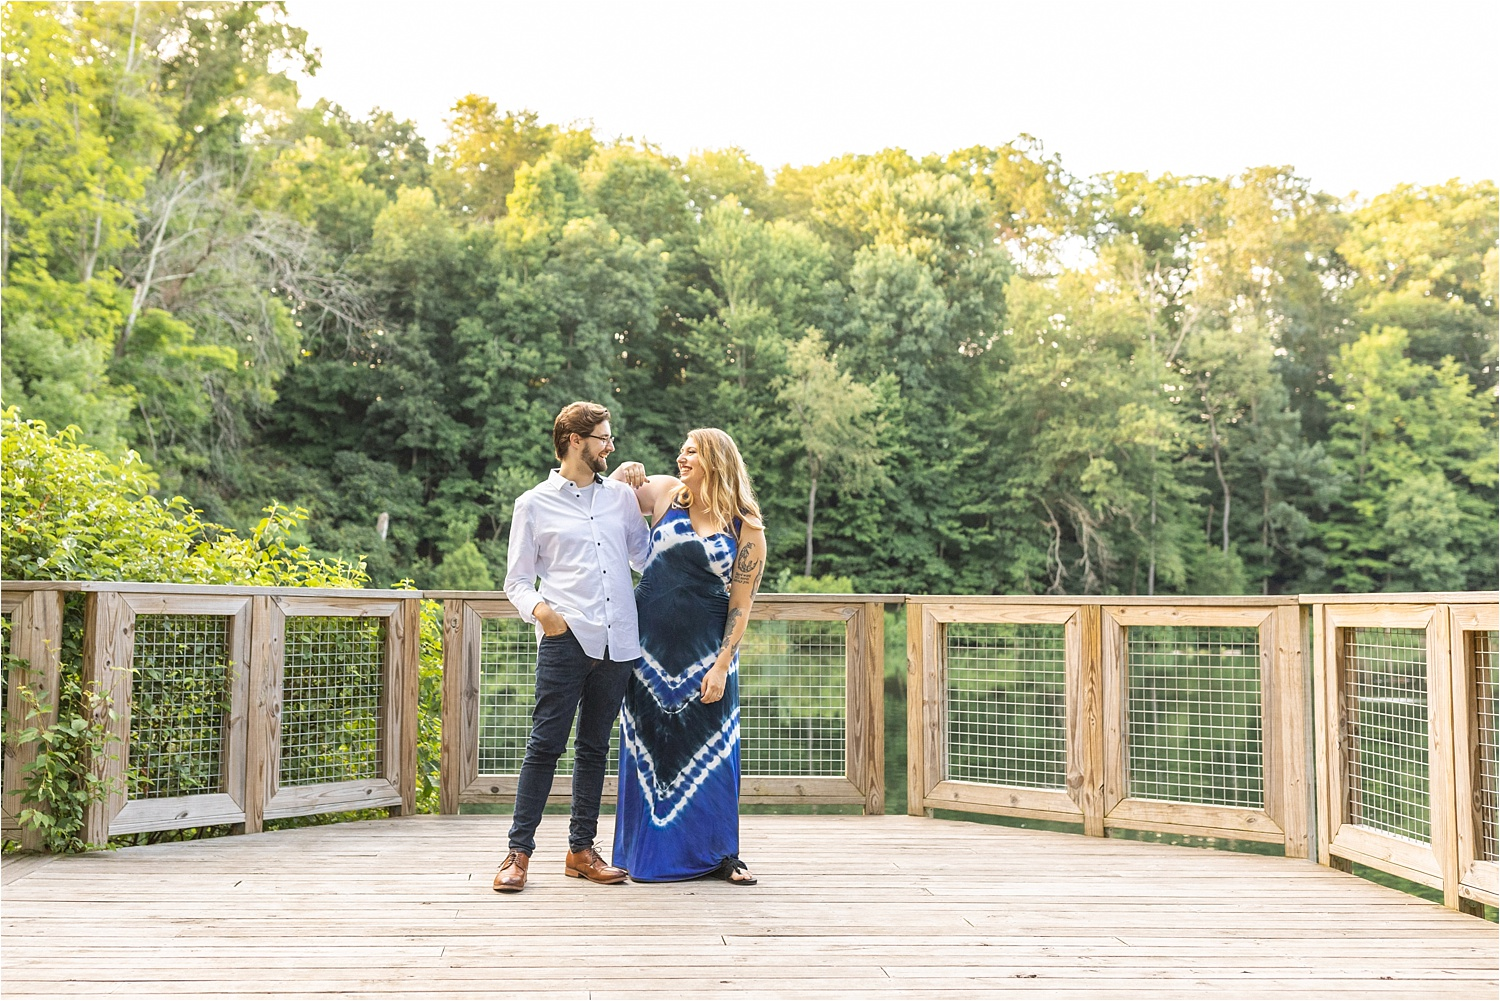 2019-08-05_0016.jpg lily pond engagement session in july 2019 at mill creek park